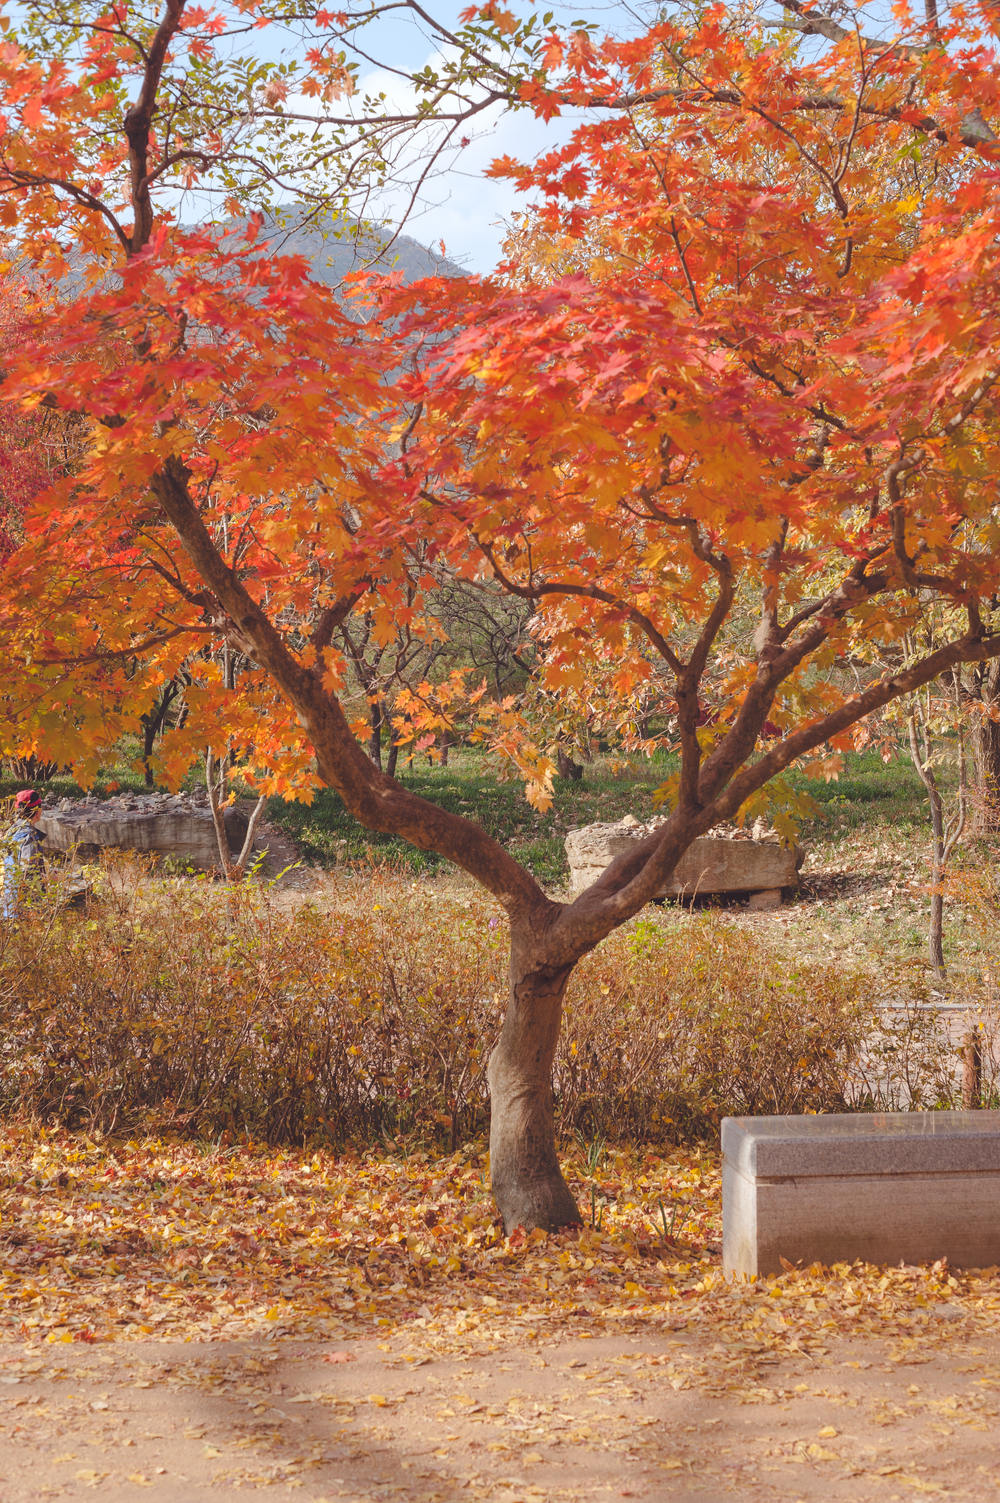 AutumnInKoreaSoenunsaParkFallLeaves (16 of 37).jpg